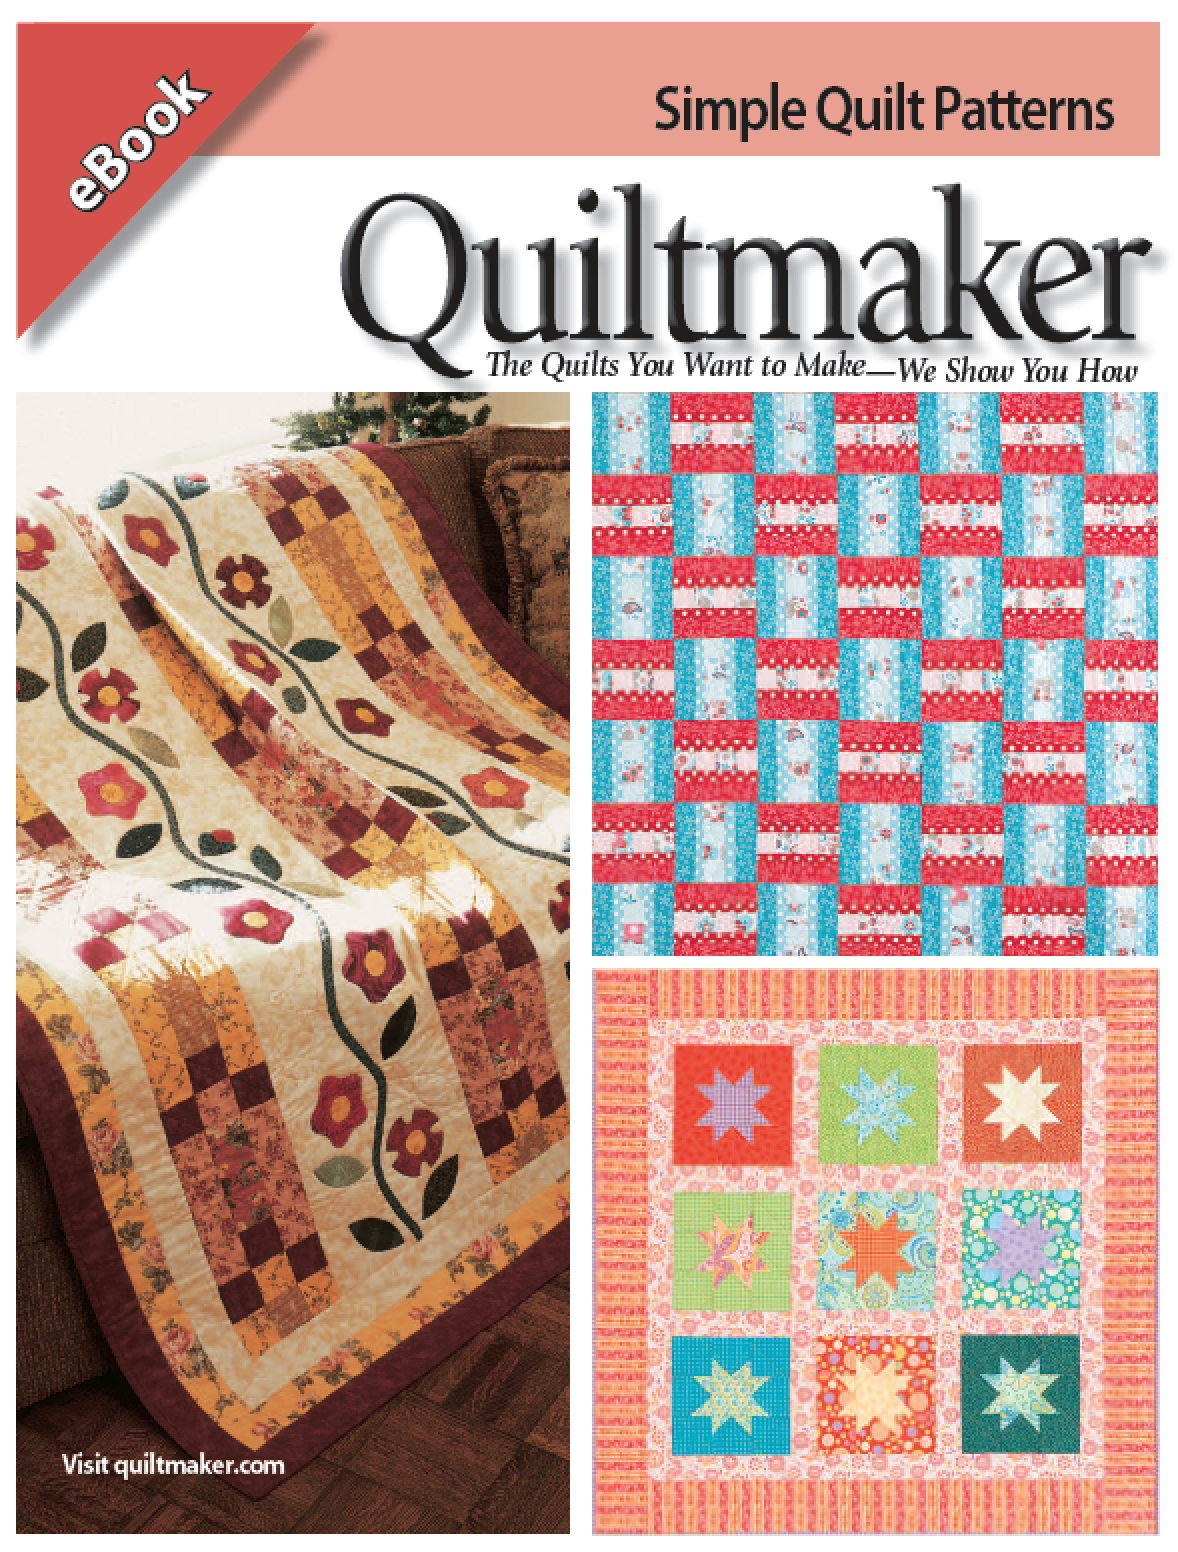 3 Free Simple Quilt Patterns The Quilting Company